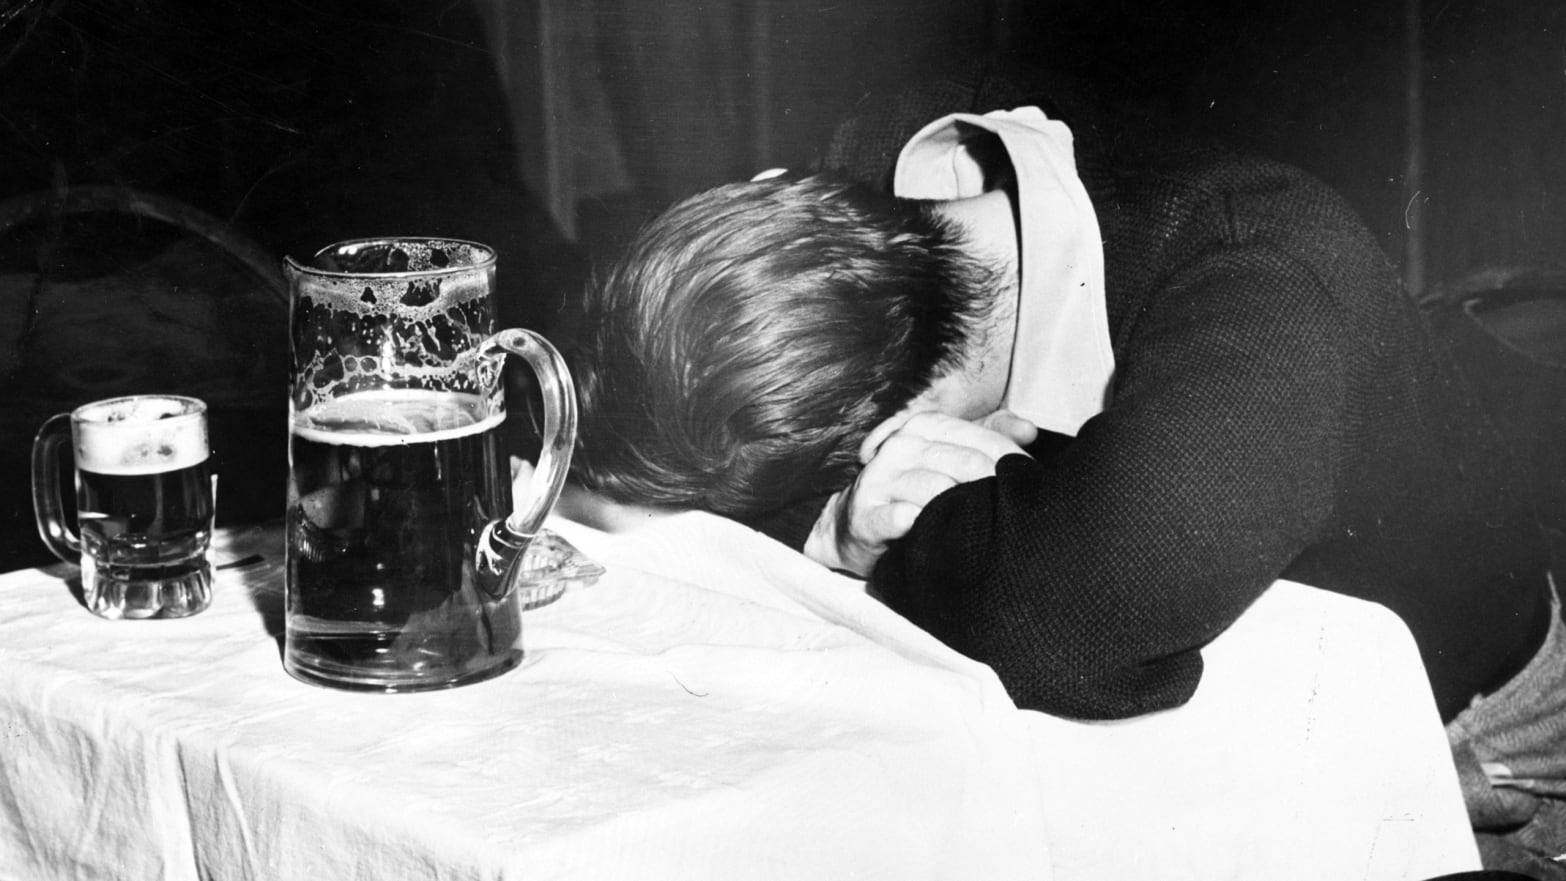 A man sleeps with his head on a table beside a pitcher of beer and a half-empty glass in a New York City bar.